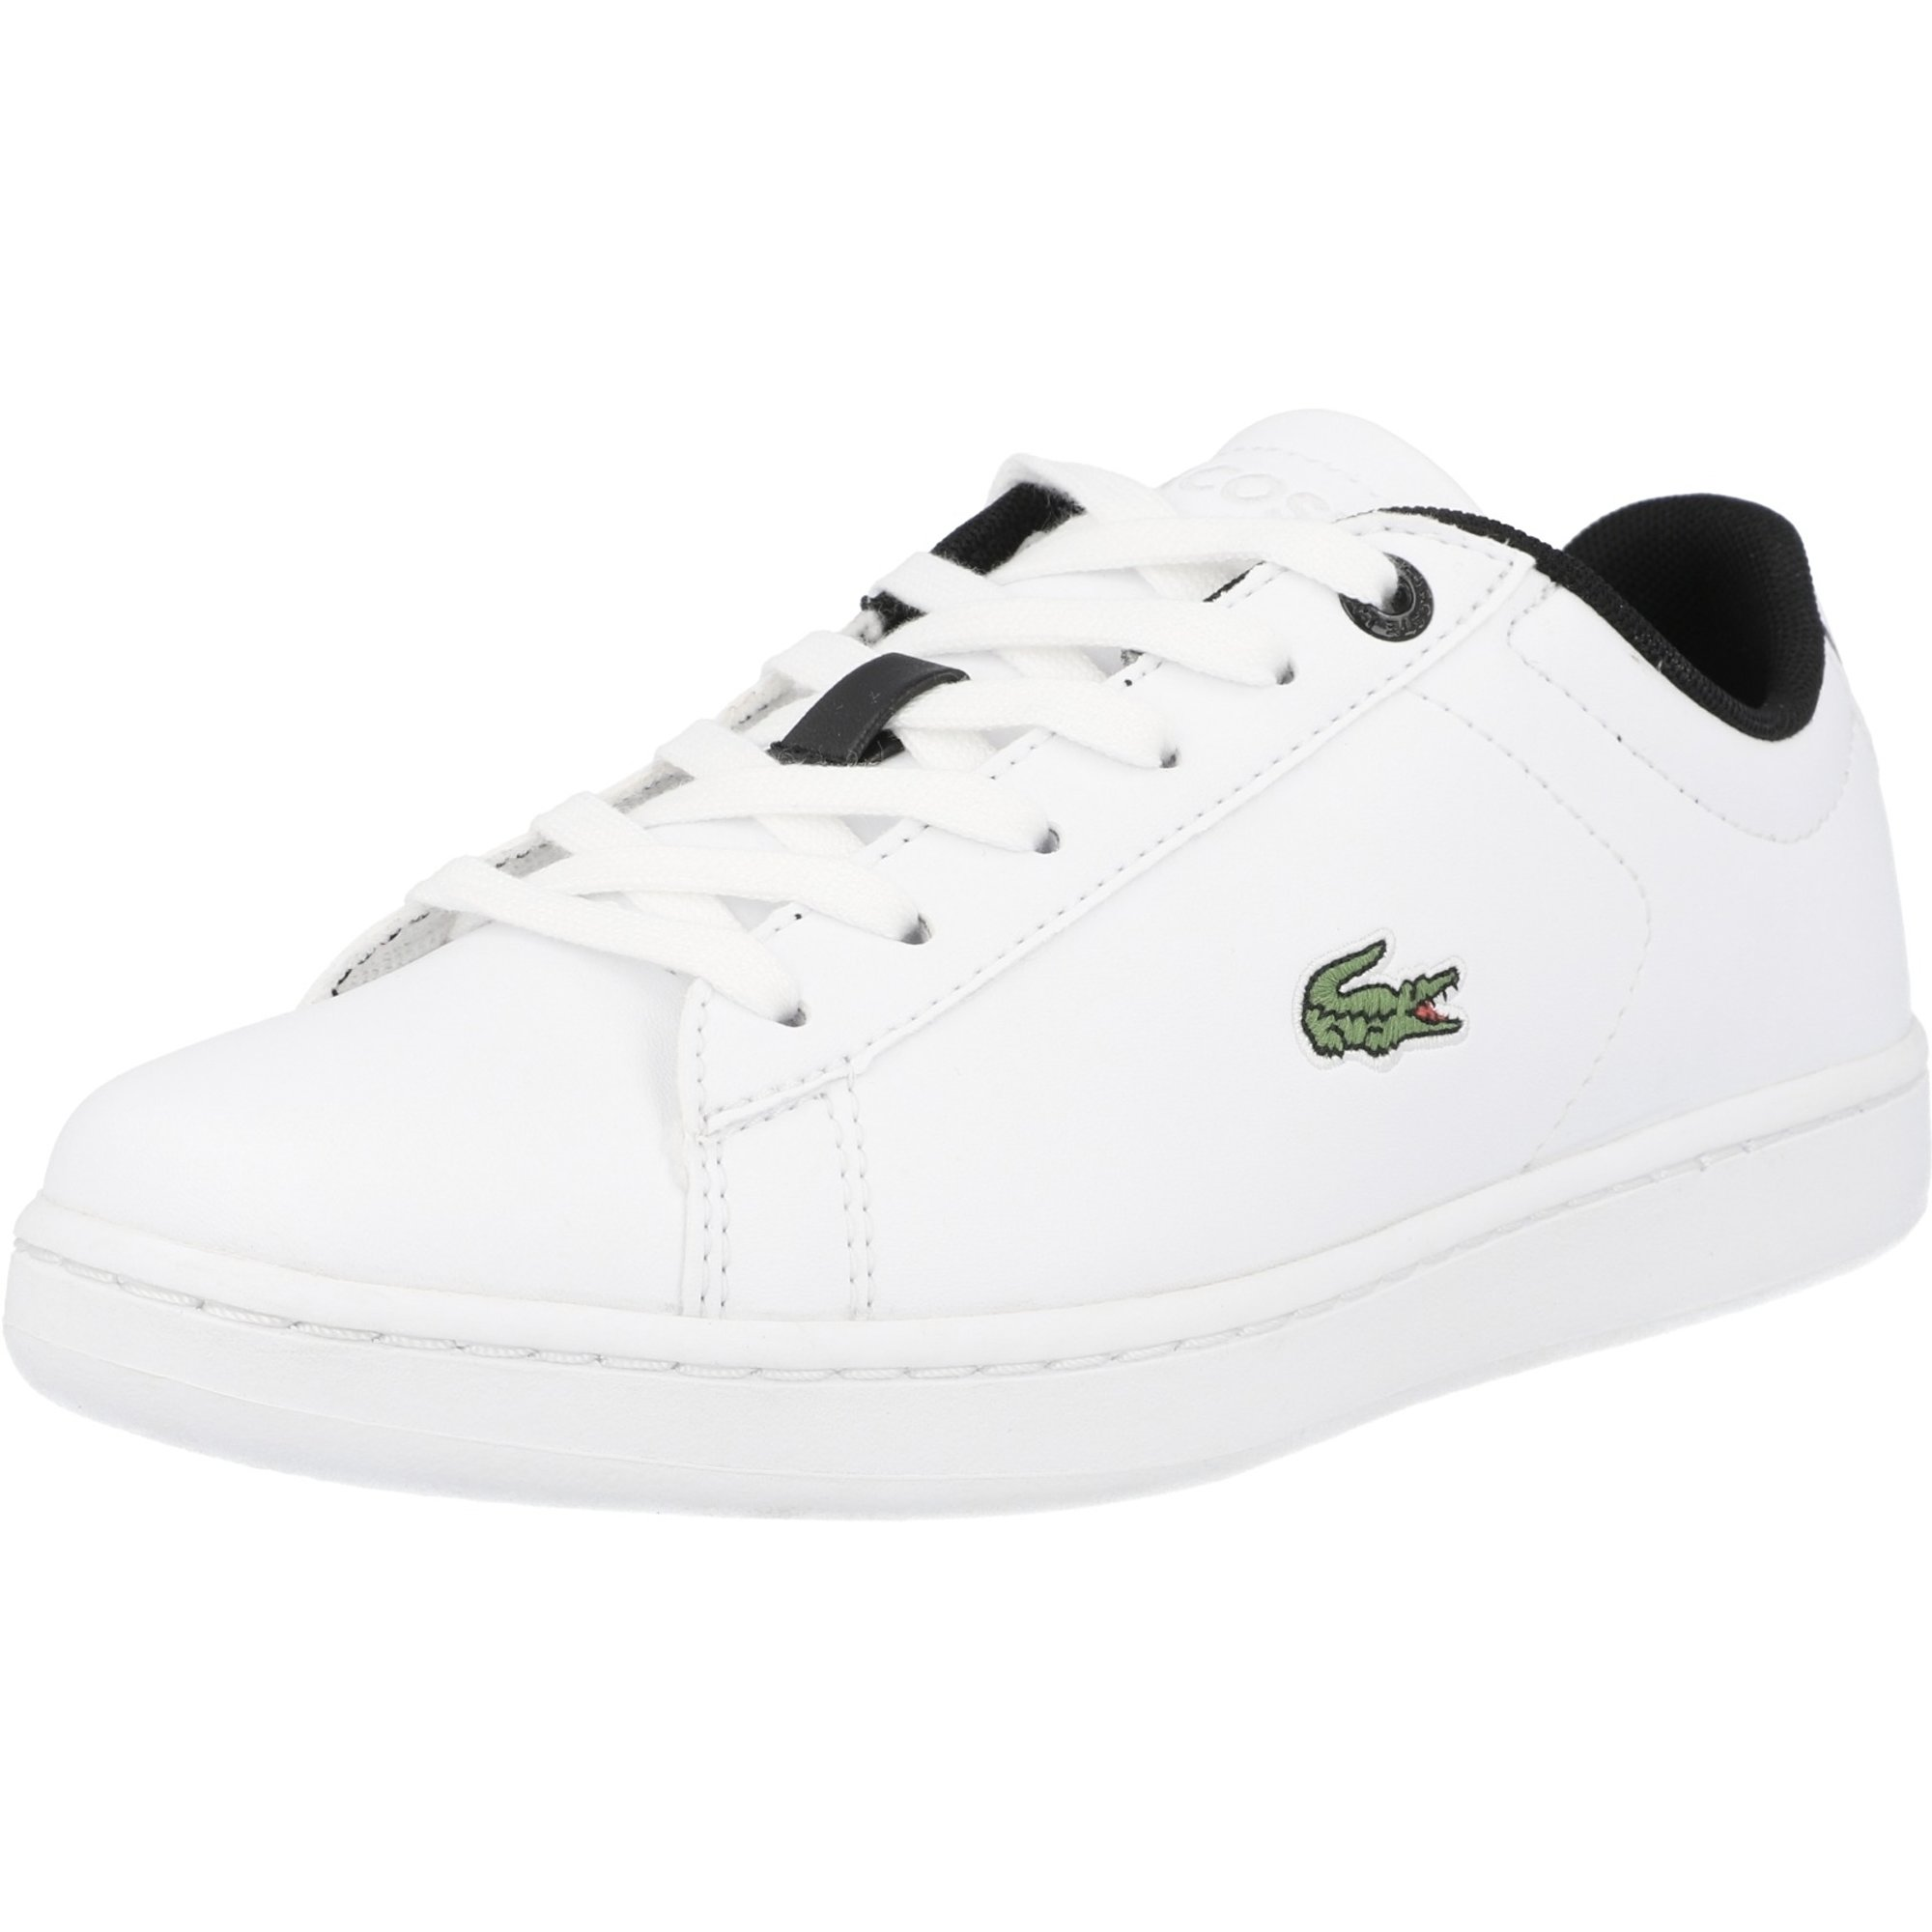 Lacoste Carnaby Evo 0120 2 White/Black Synthetic